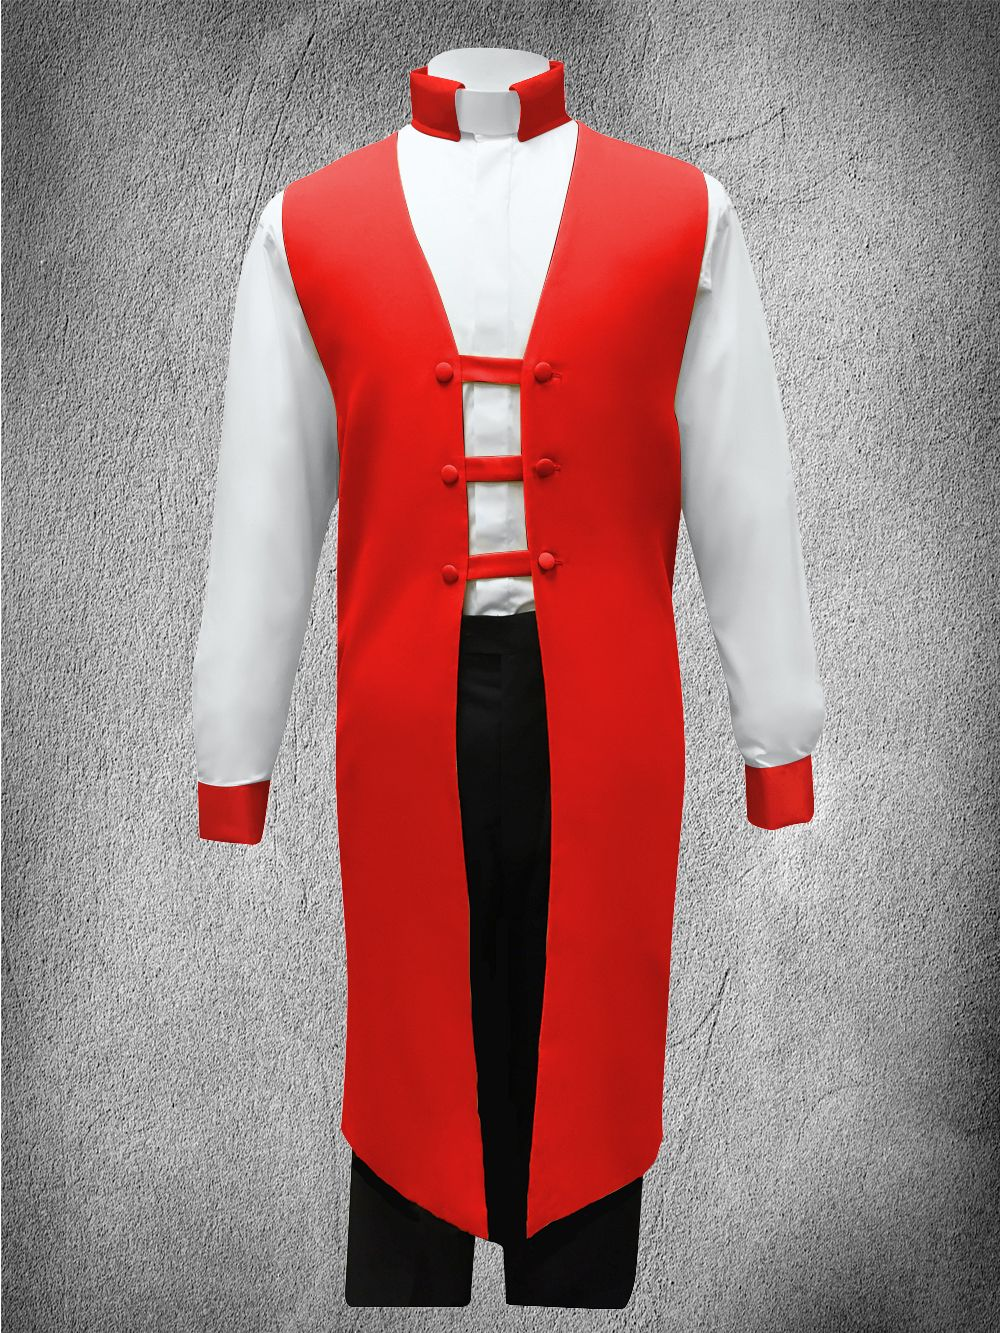 Contrast Ministerial Vesture Set Red/White-Red